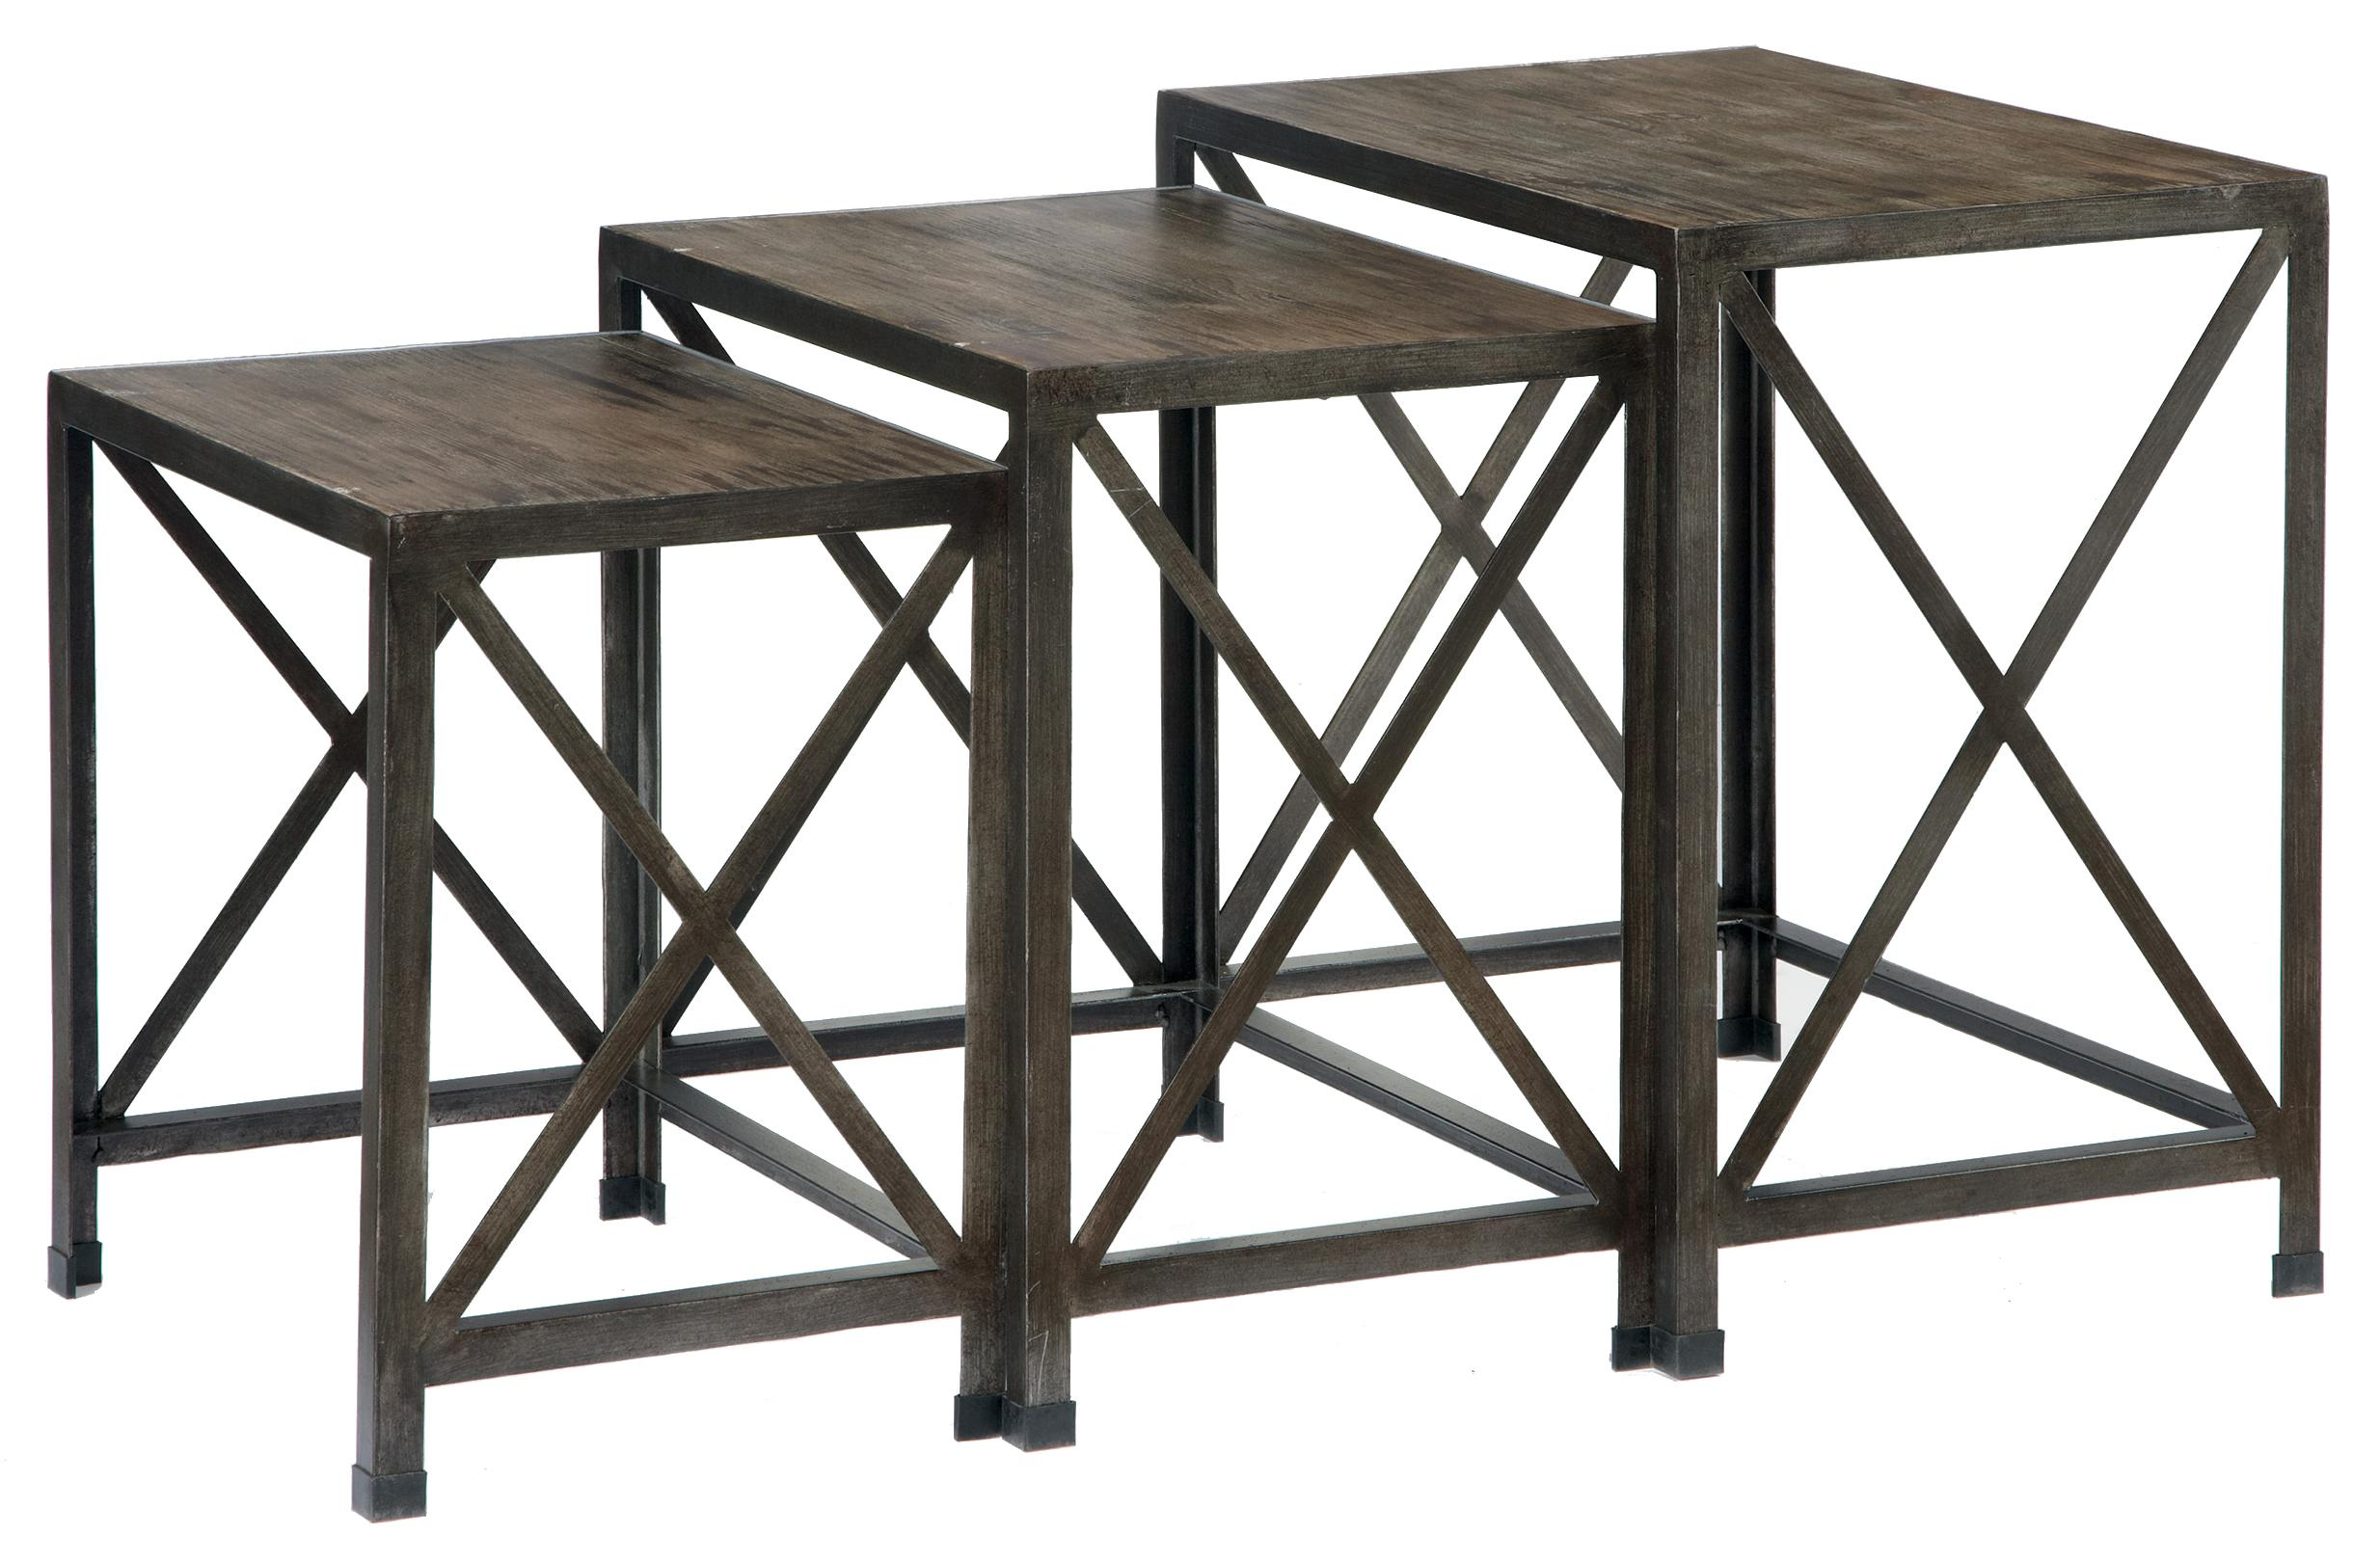 iron table lamps the perfect beautiful end tables coffee ashley signature design vennilux set rustic metal wood products color accents nesting item number laptop riser stand round